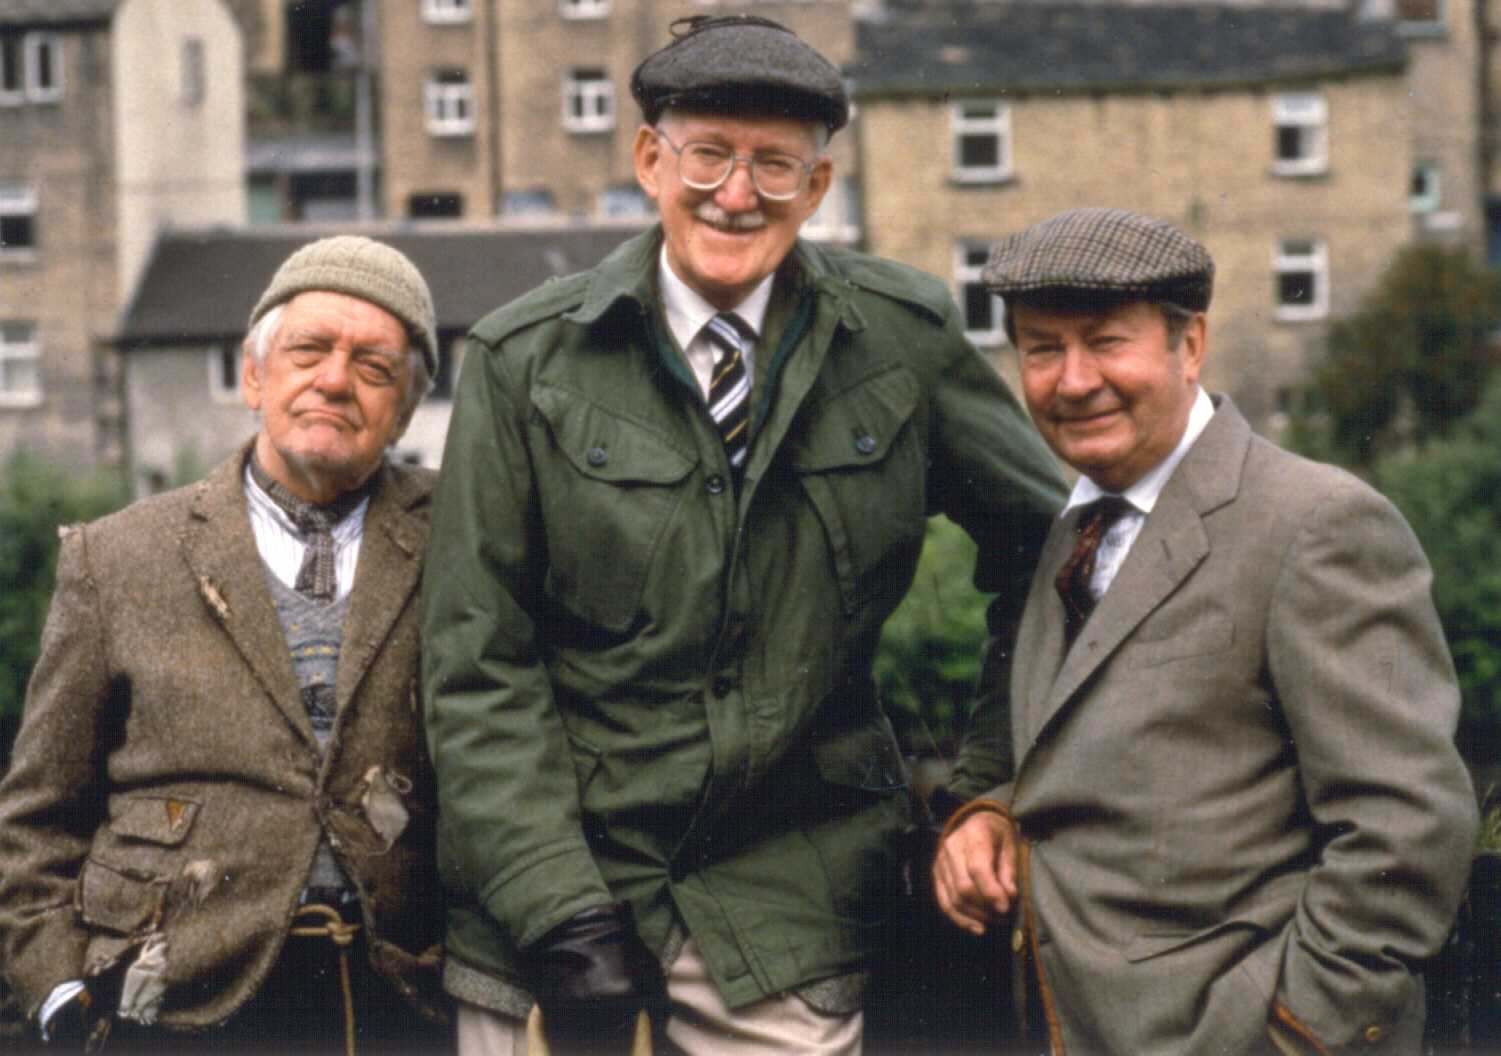 1633bd4fde7 The Age of Uncertainty  The last of The Last of the Summer Wine